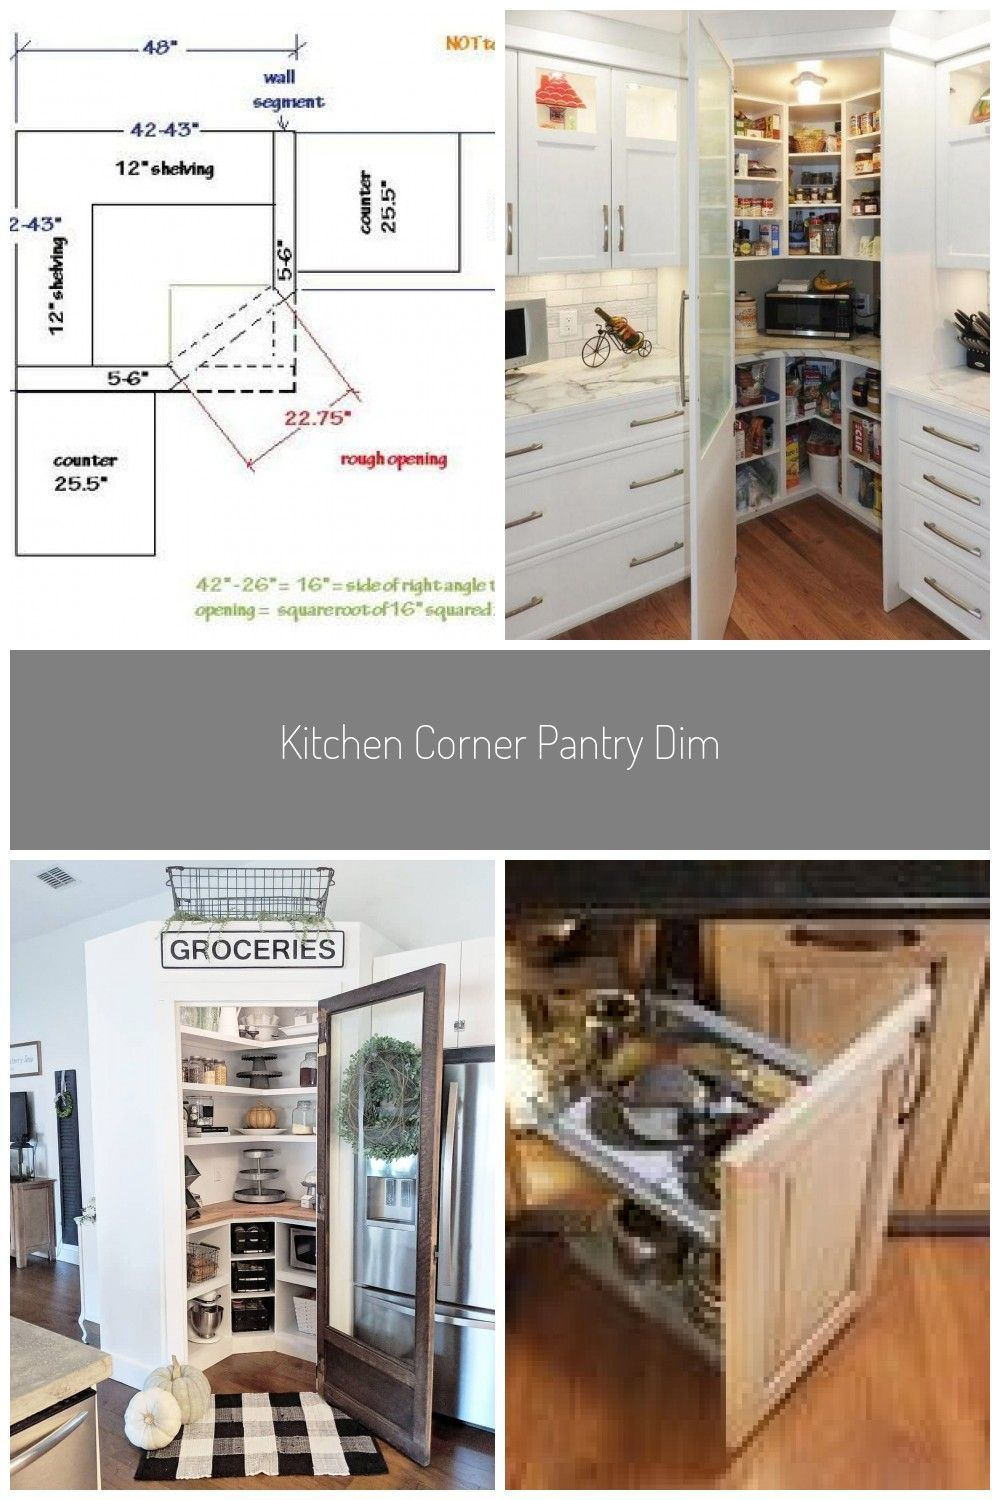 Kitchen Corner Pantry Dimensions Cabinets 49 Best Ideas26 Facts Fiction And Cor Cabinets Cor In 2020 Corner Pantry Corner Pantry Cabinet Corner Kitchen Pantry